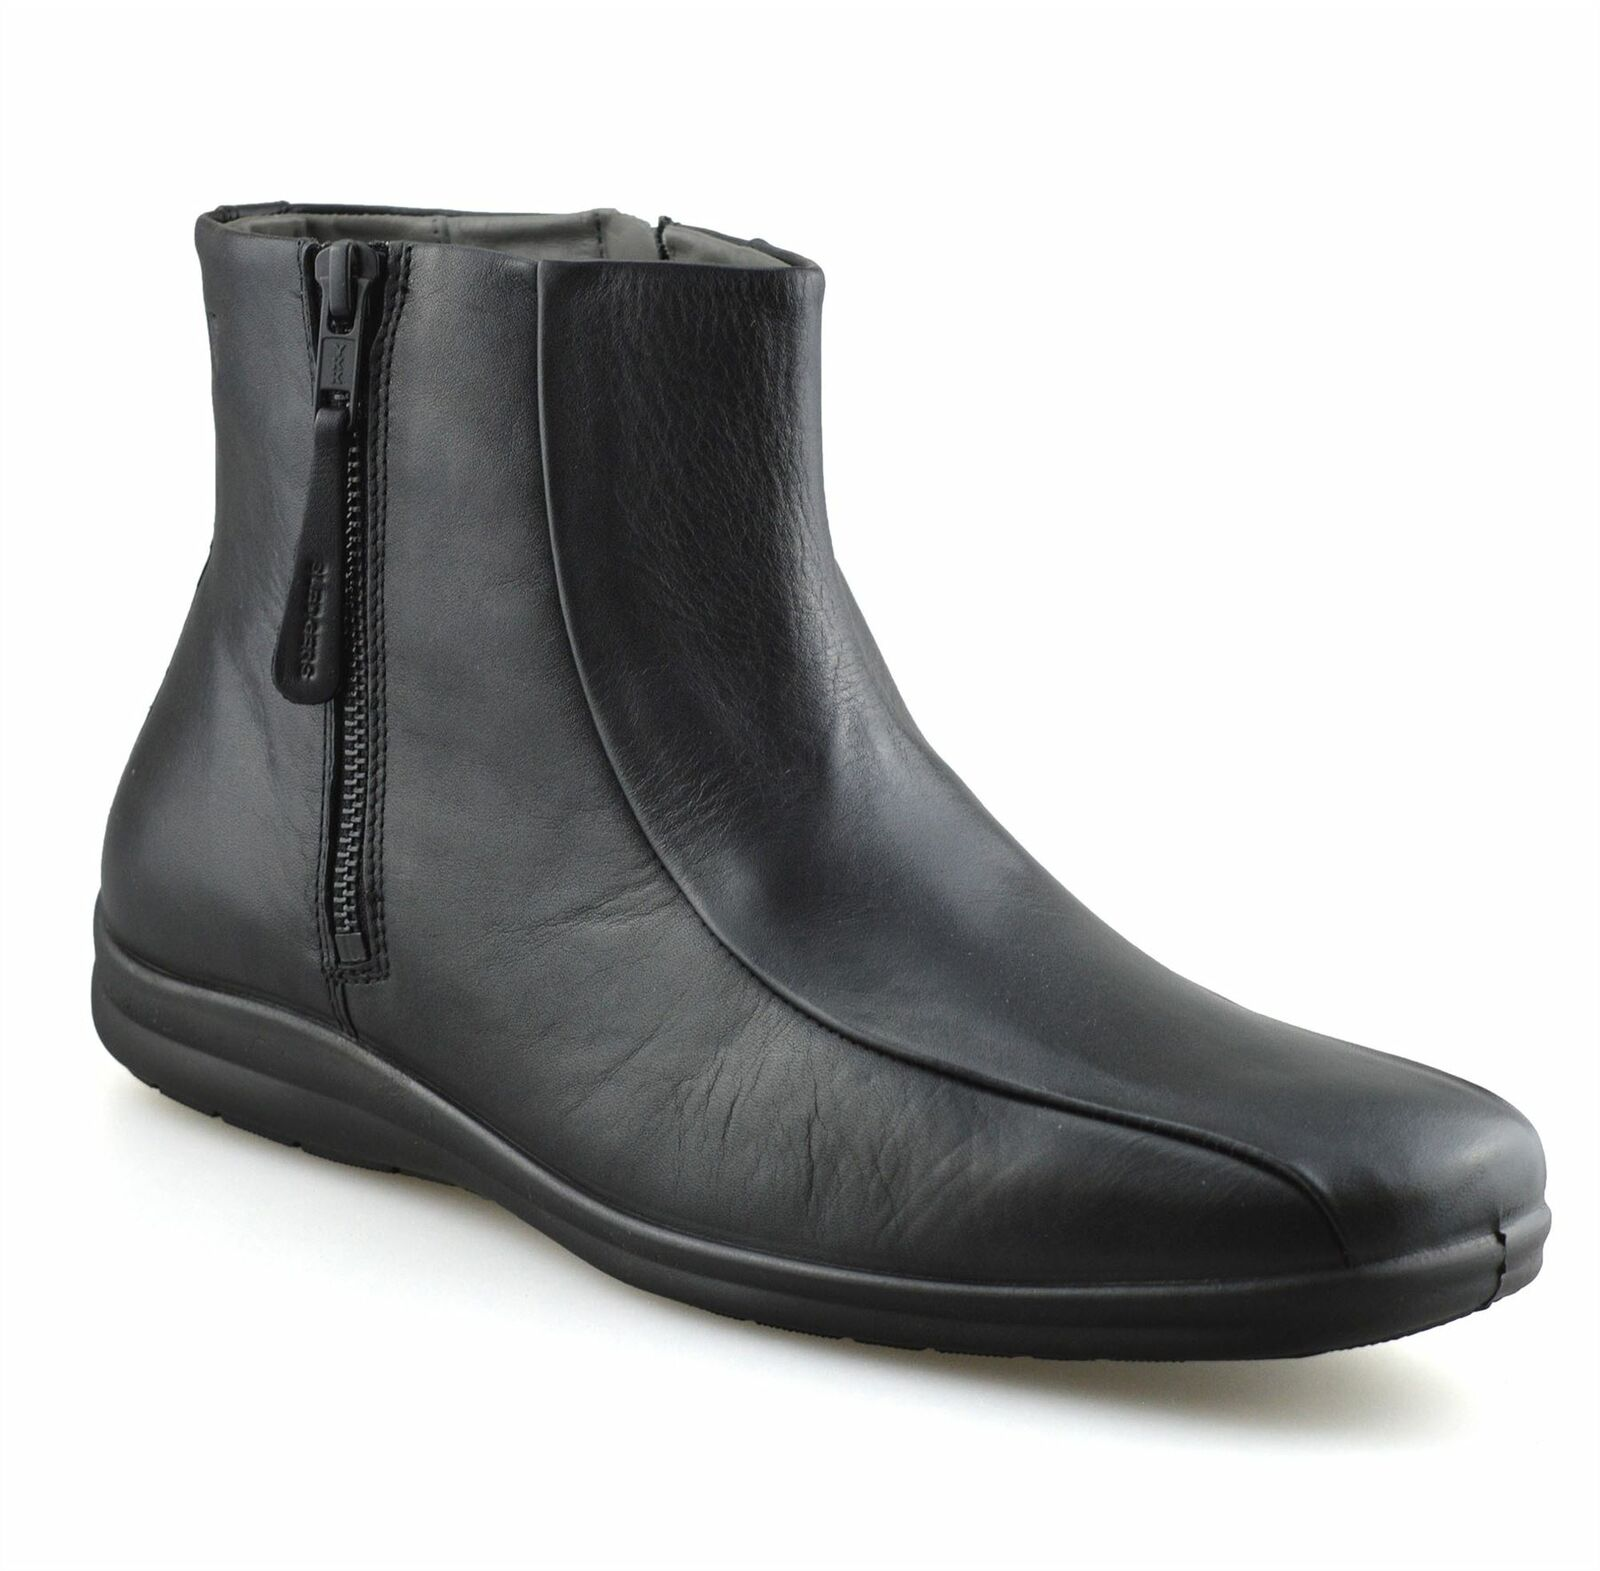 Mens New Leather Zip Up Smart Formal Work Chelsea Dealer Ankle Boots Shoes Size